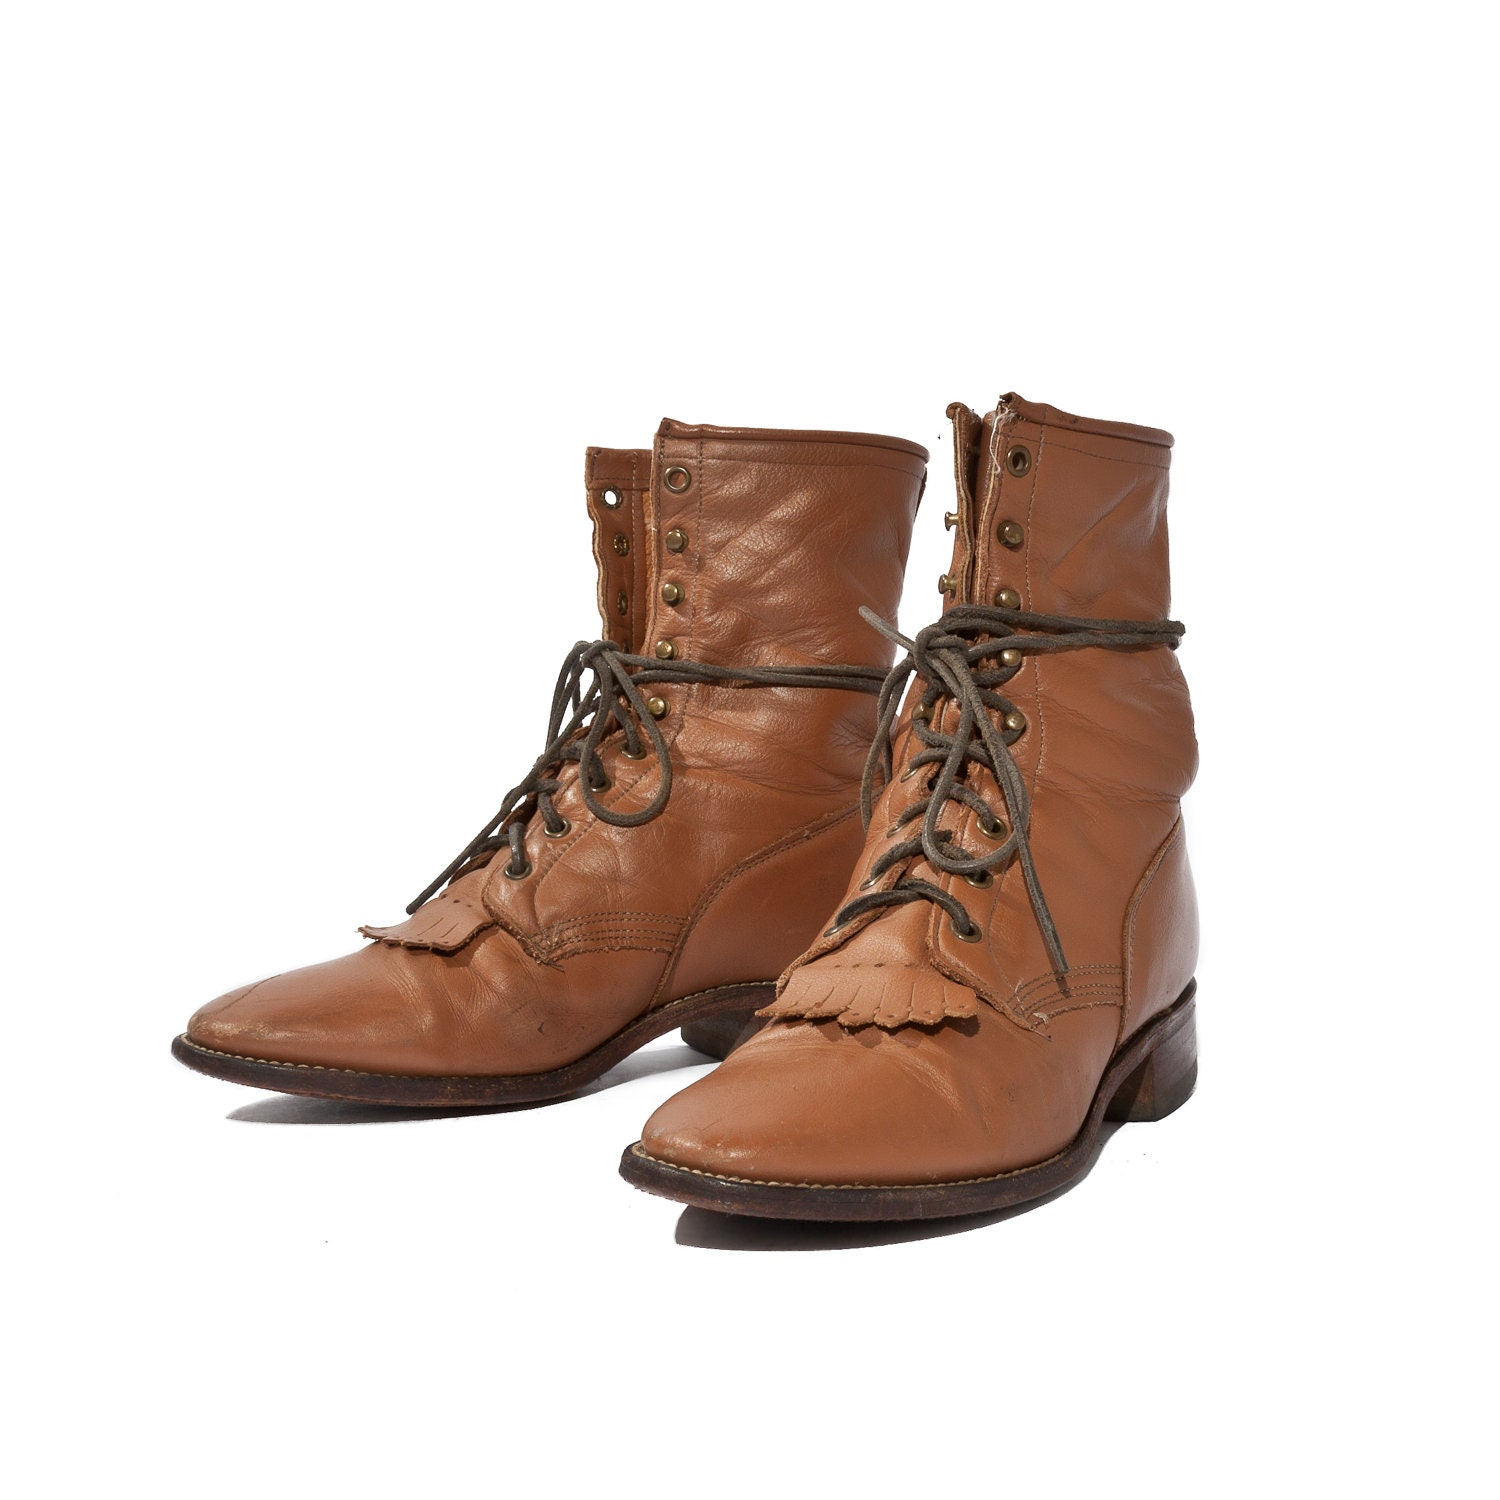 s lace up roper boots mocha brown leather by nashdrygoods